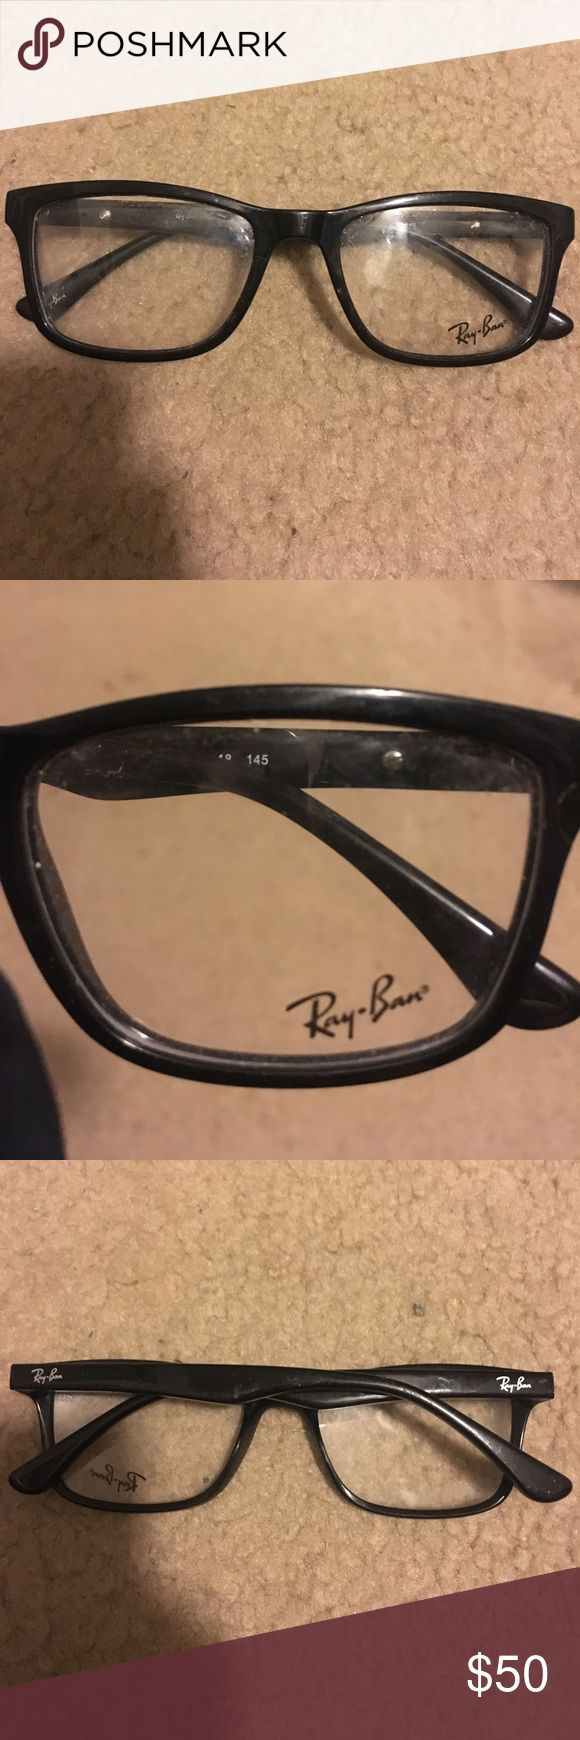 Ray Ban Black Frames They still have the factory plastic lenses in. These can be exchanged for prescription lenses or worn as accessory eyeglasses. Authentic Ray Bans purchased from their website Ray-Ban Accessories Glasses